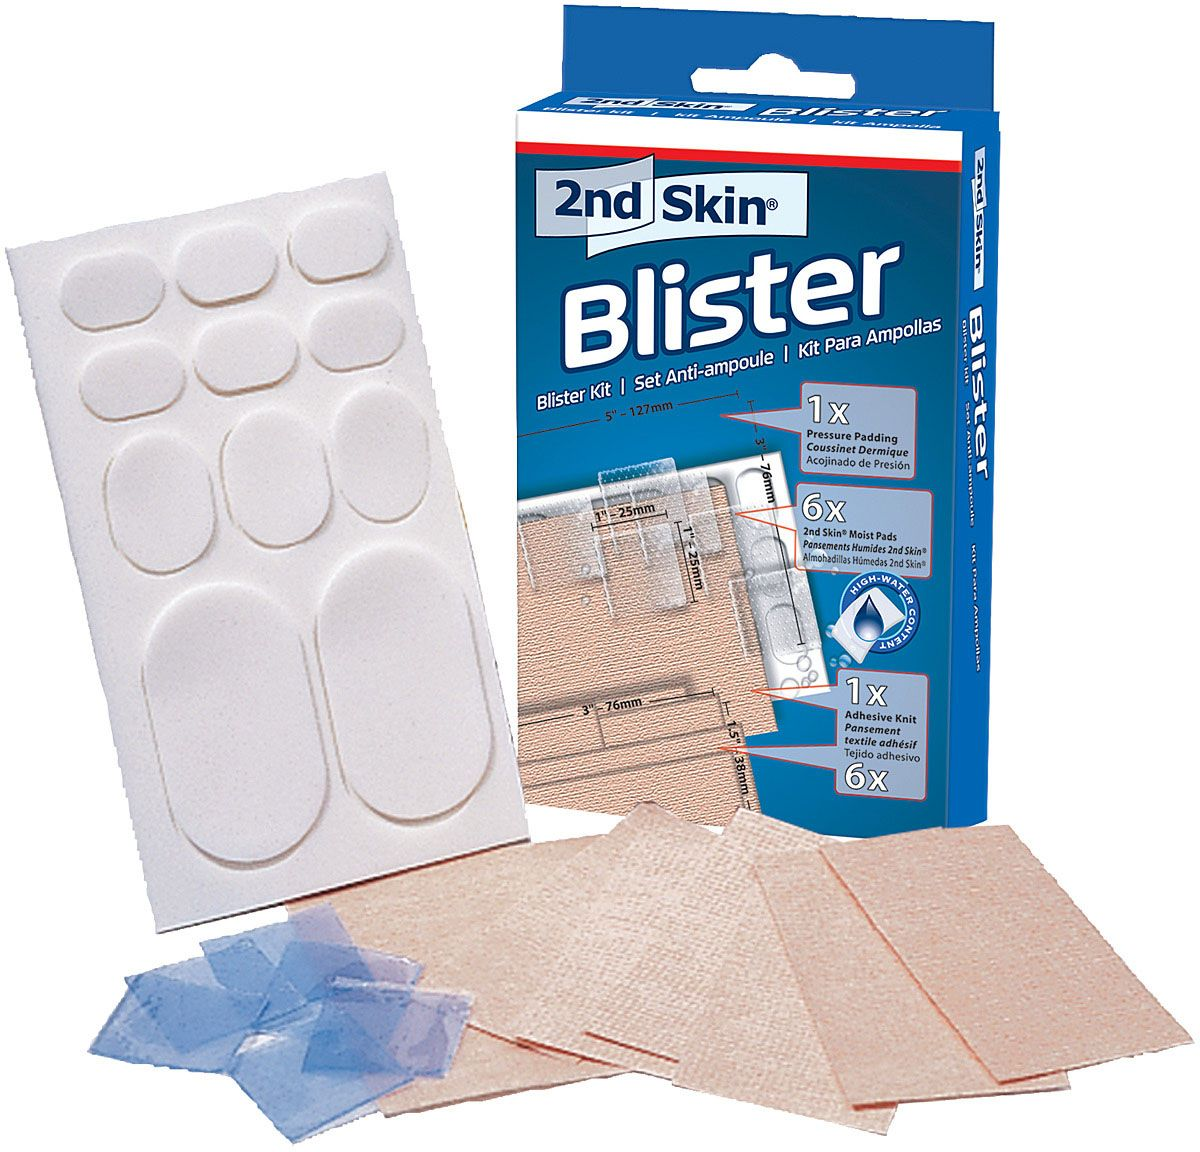 spenco 2nd skin blister kit for protection against friction, pressure and blisters.